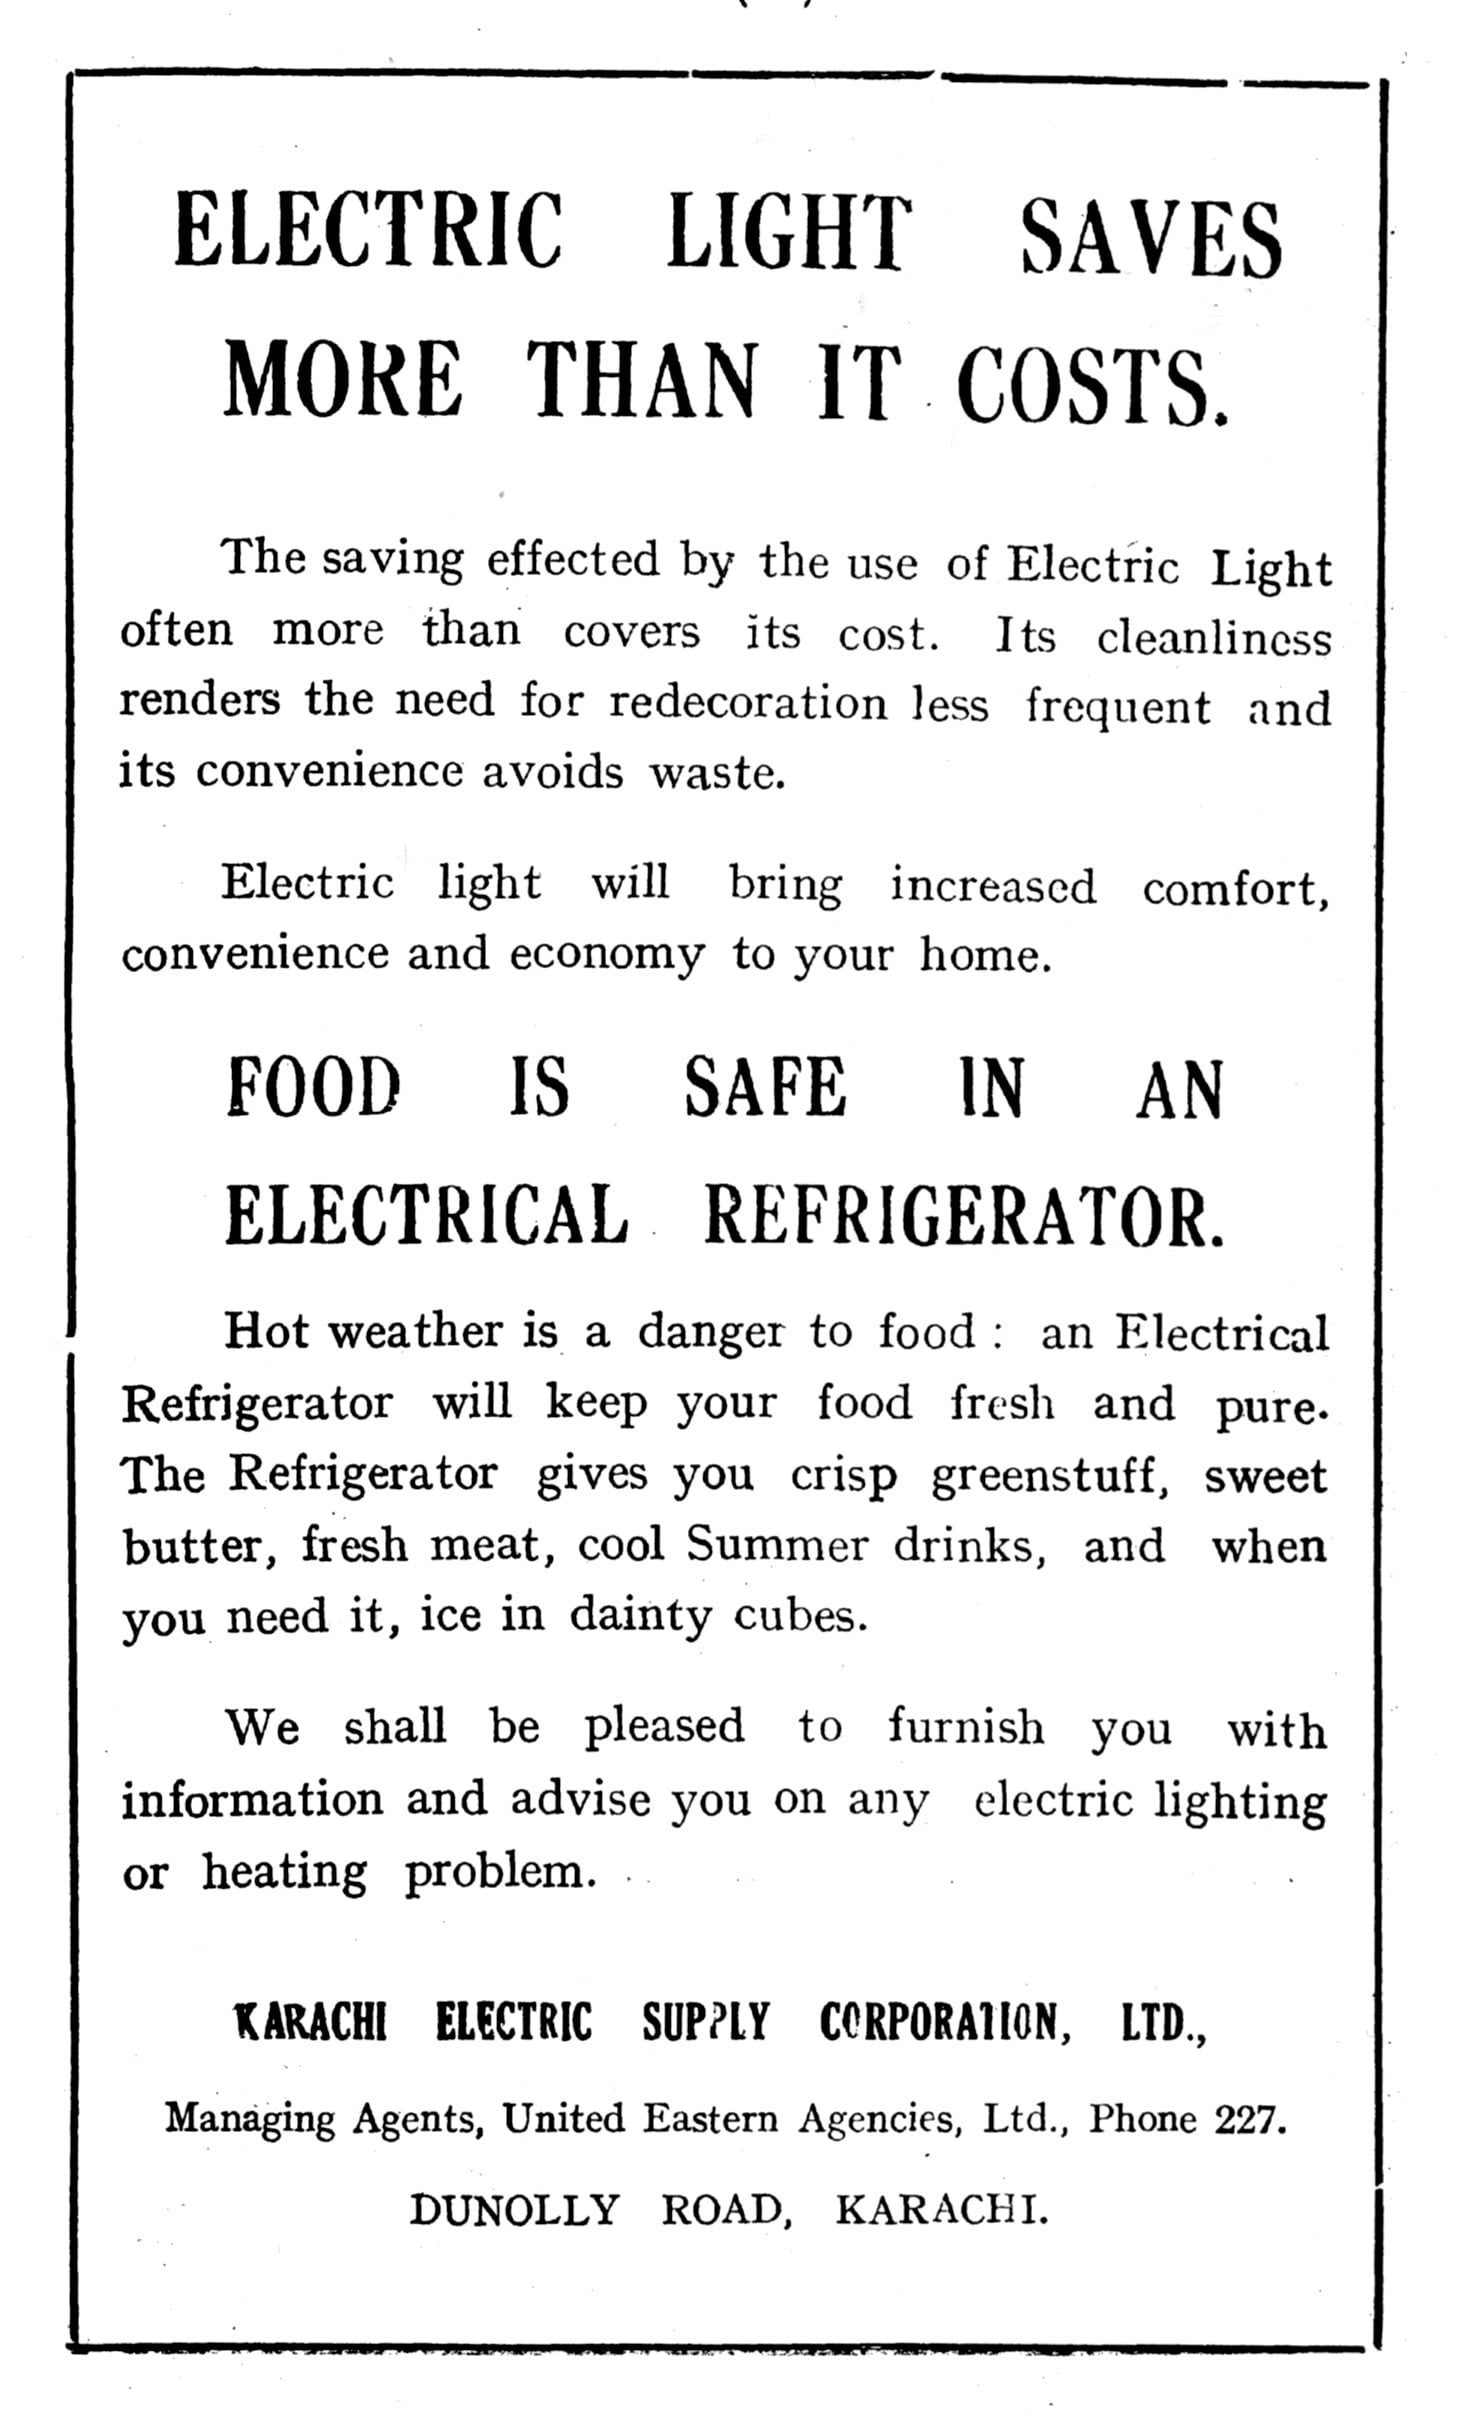 An ad for the Karachi Electric Supply Corporation, the precursor to K-Electric, which came into being in September 1913. (Courtesy: The Daily Gazette - Karachi Resident's Directory, 1932)